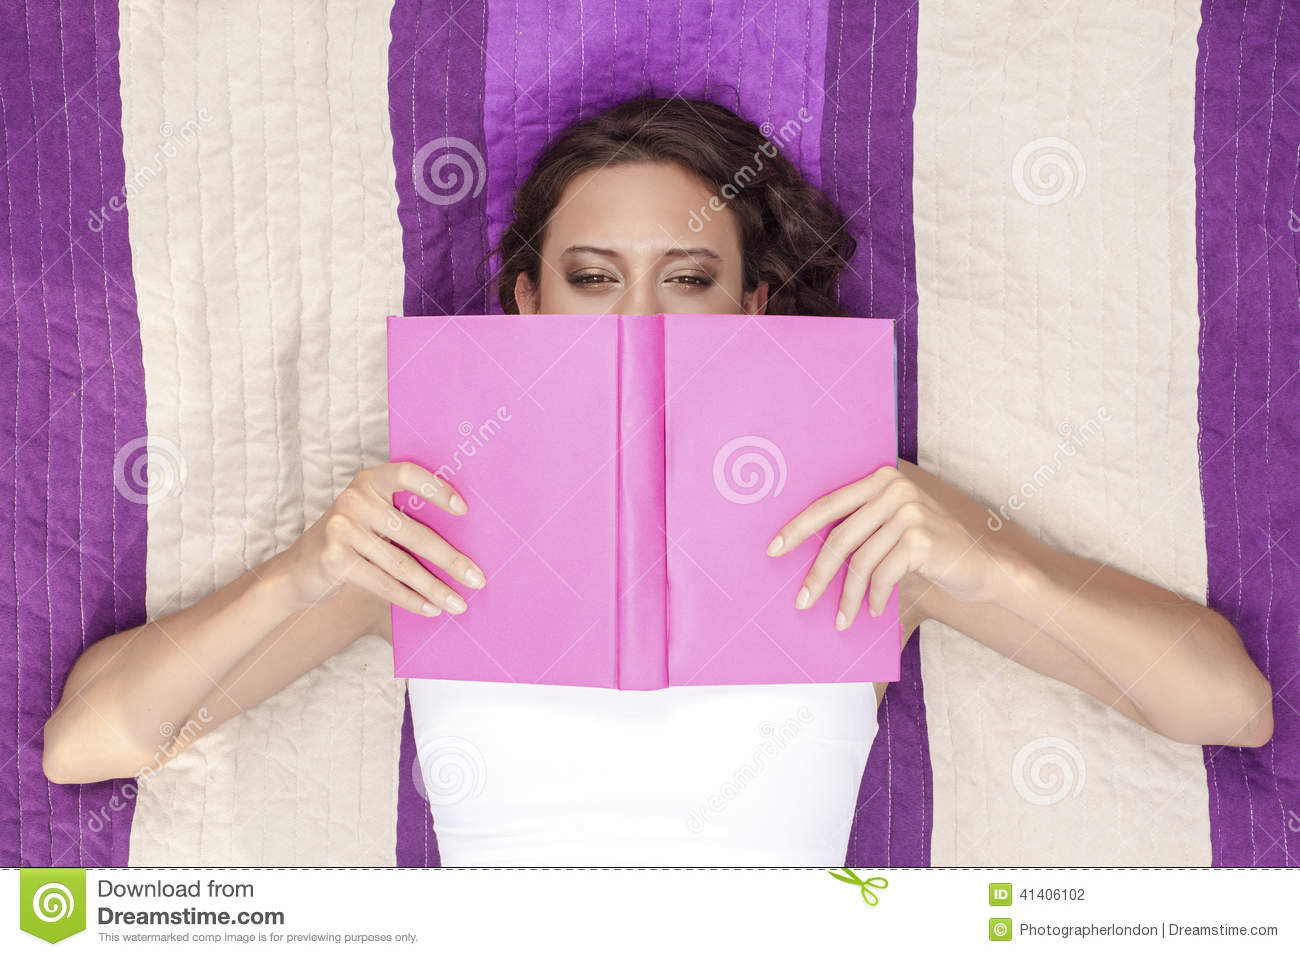 Book Covering Face : Directly above shot of woman covering face with book while